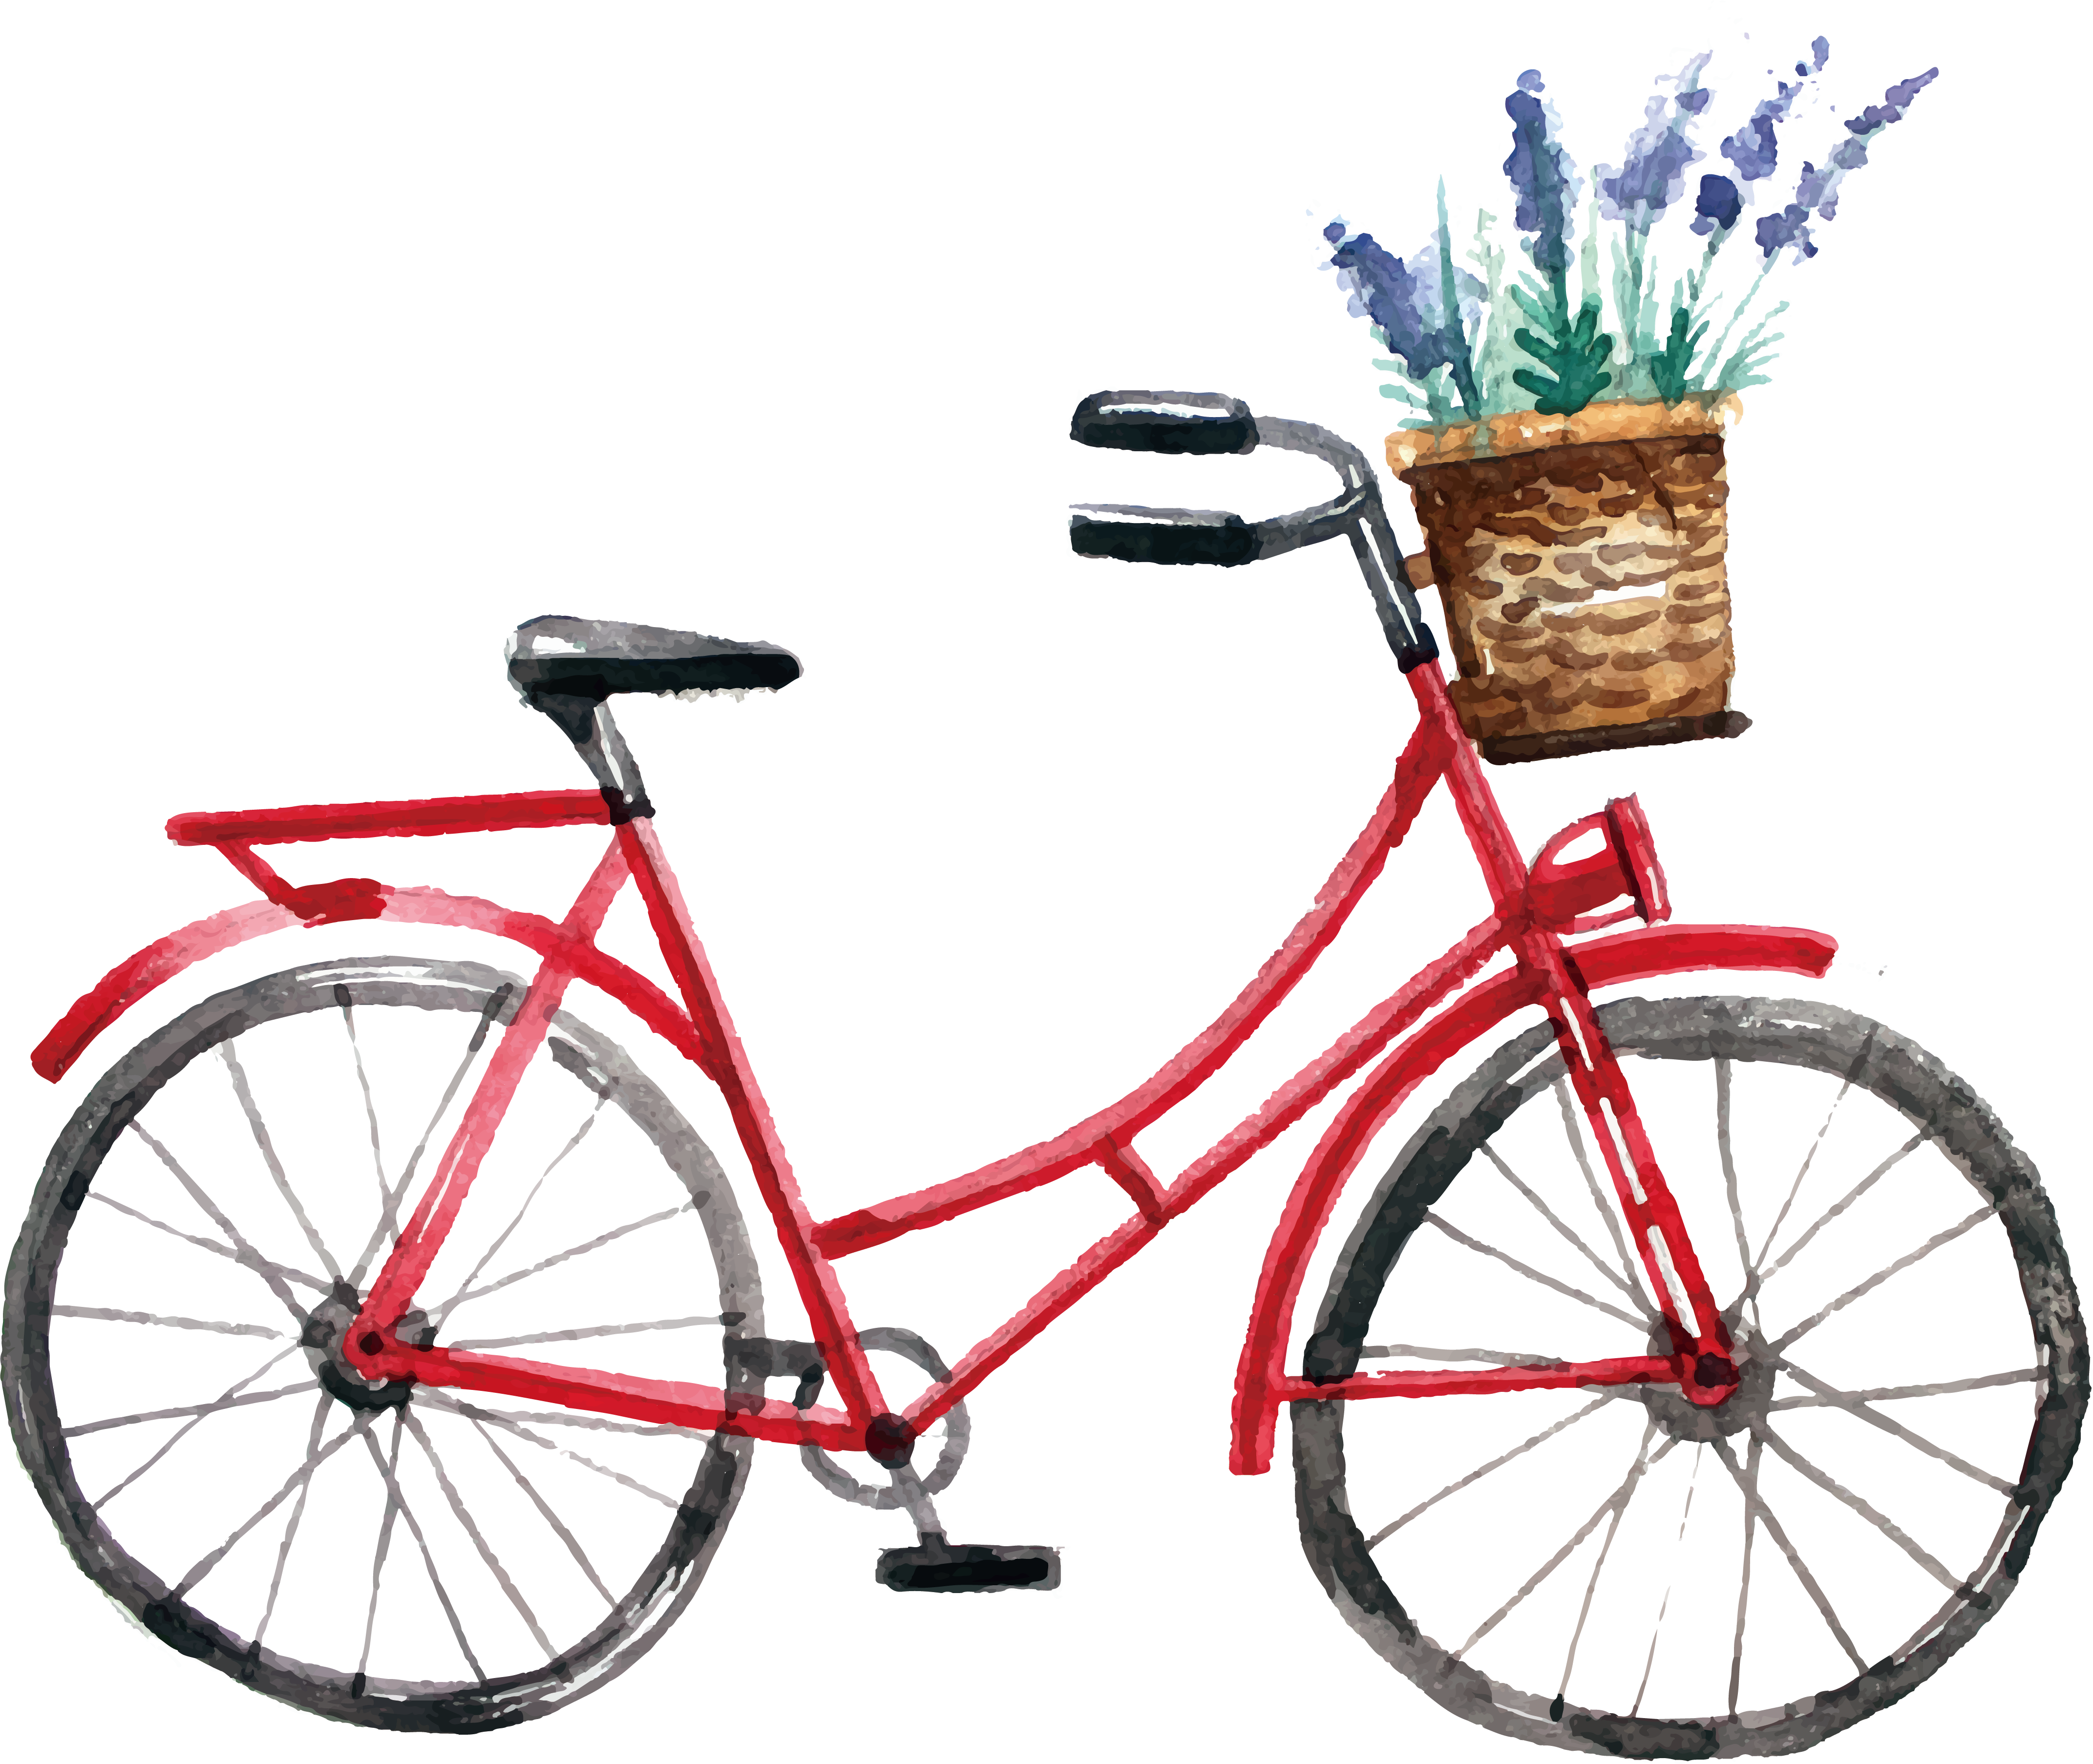 Cycle vector bicycle design. Watercolor painting cycling bike